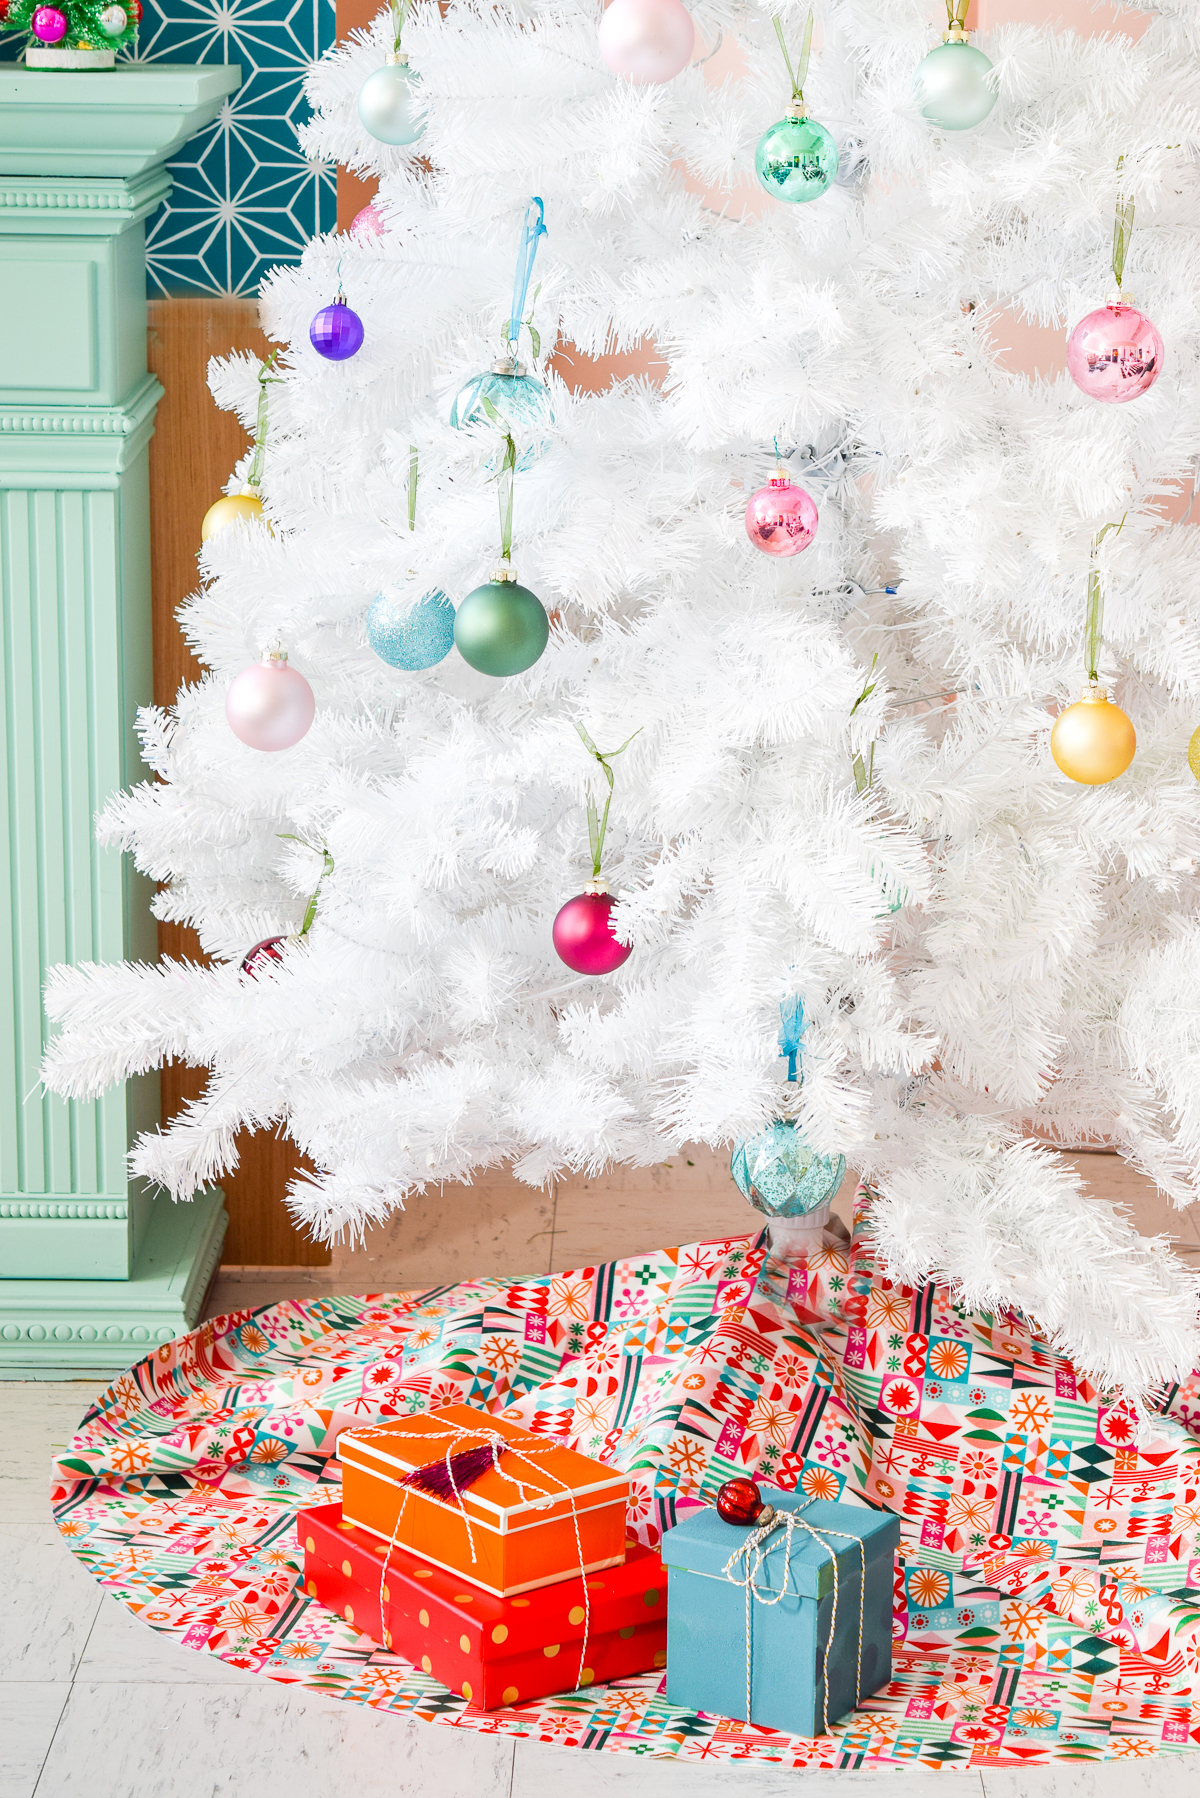 Have you ever wondered how to sew a Christmas tree skirt? It's super easy. This tutorial is for you, if you're not impressed with the what's in stores. All you need is 2yrds of velvet fabric from Spoonflower. #christmastreeskirt #treeskirt